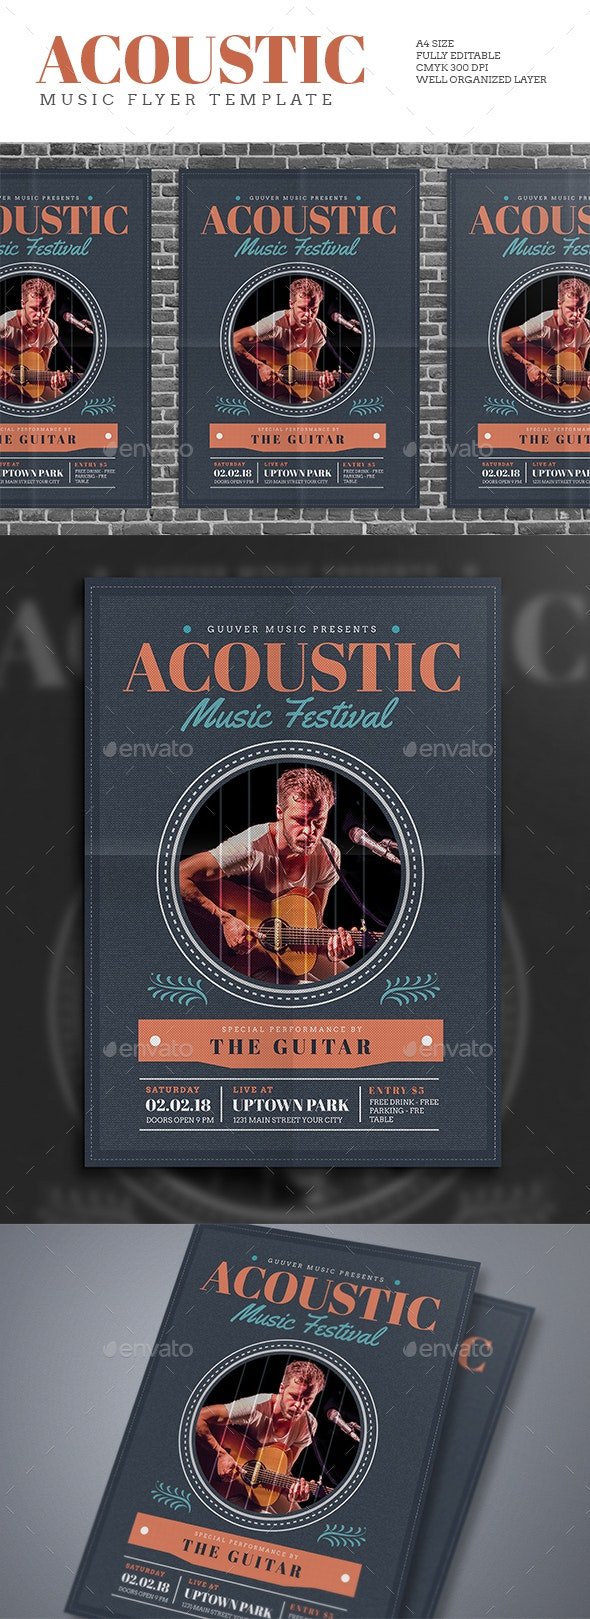 Acoustic Music Flyer - Events Flyers